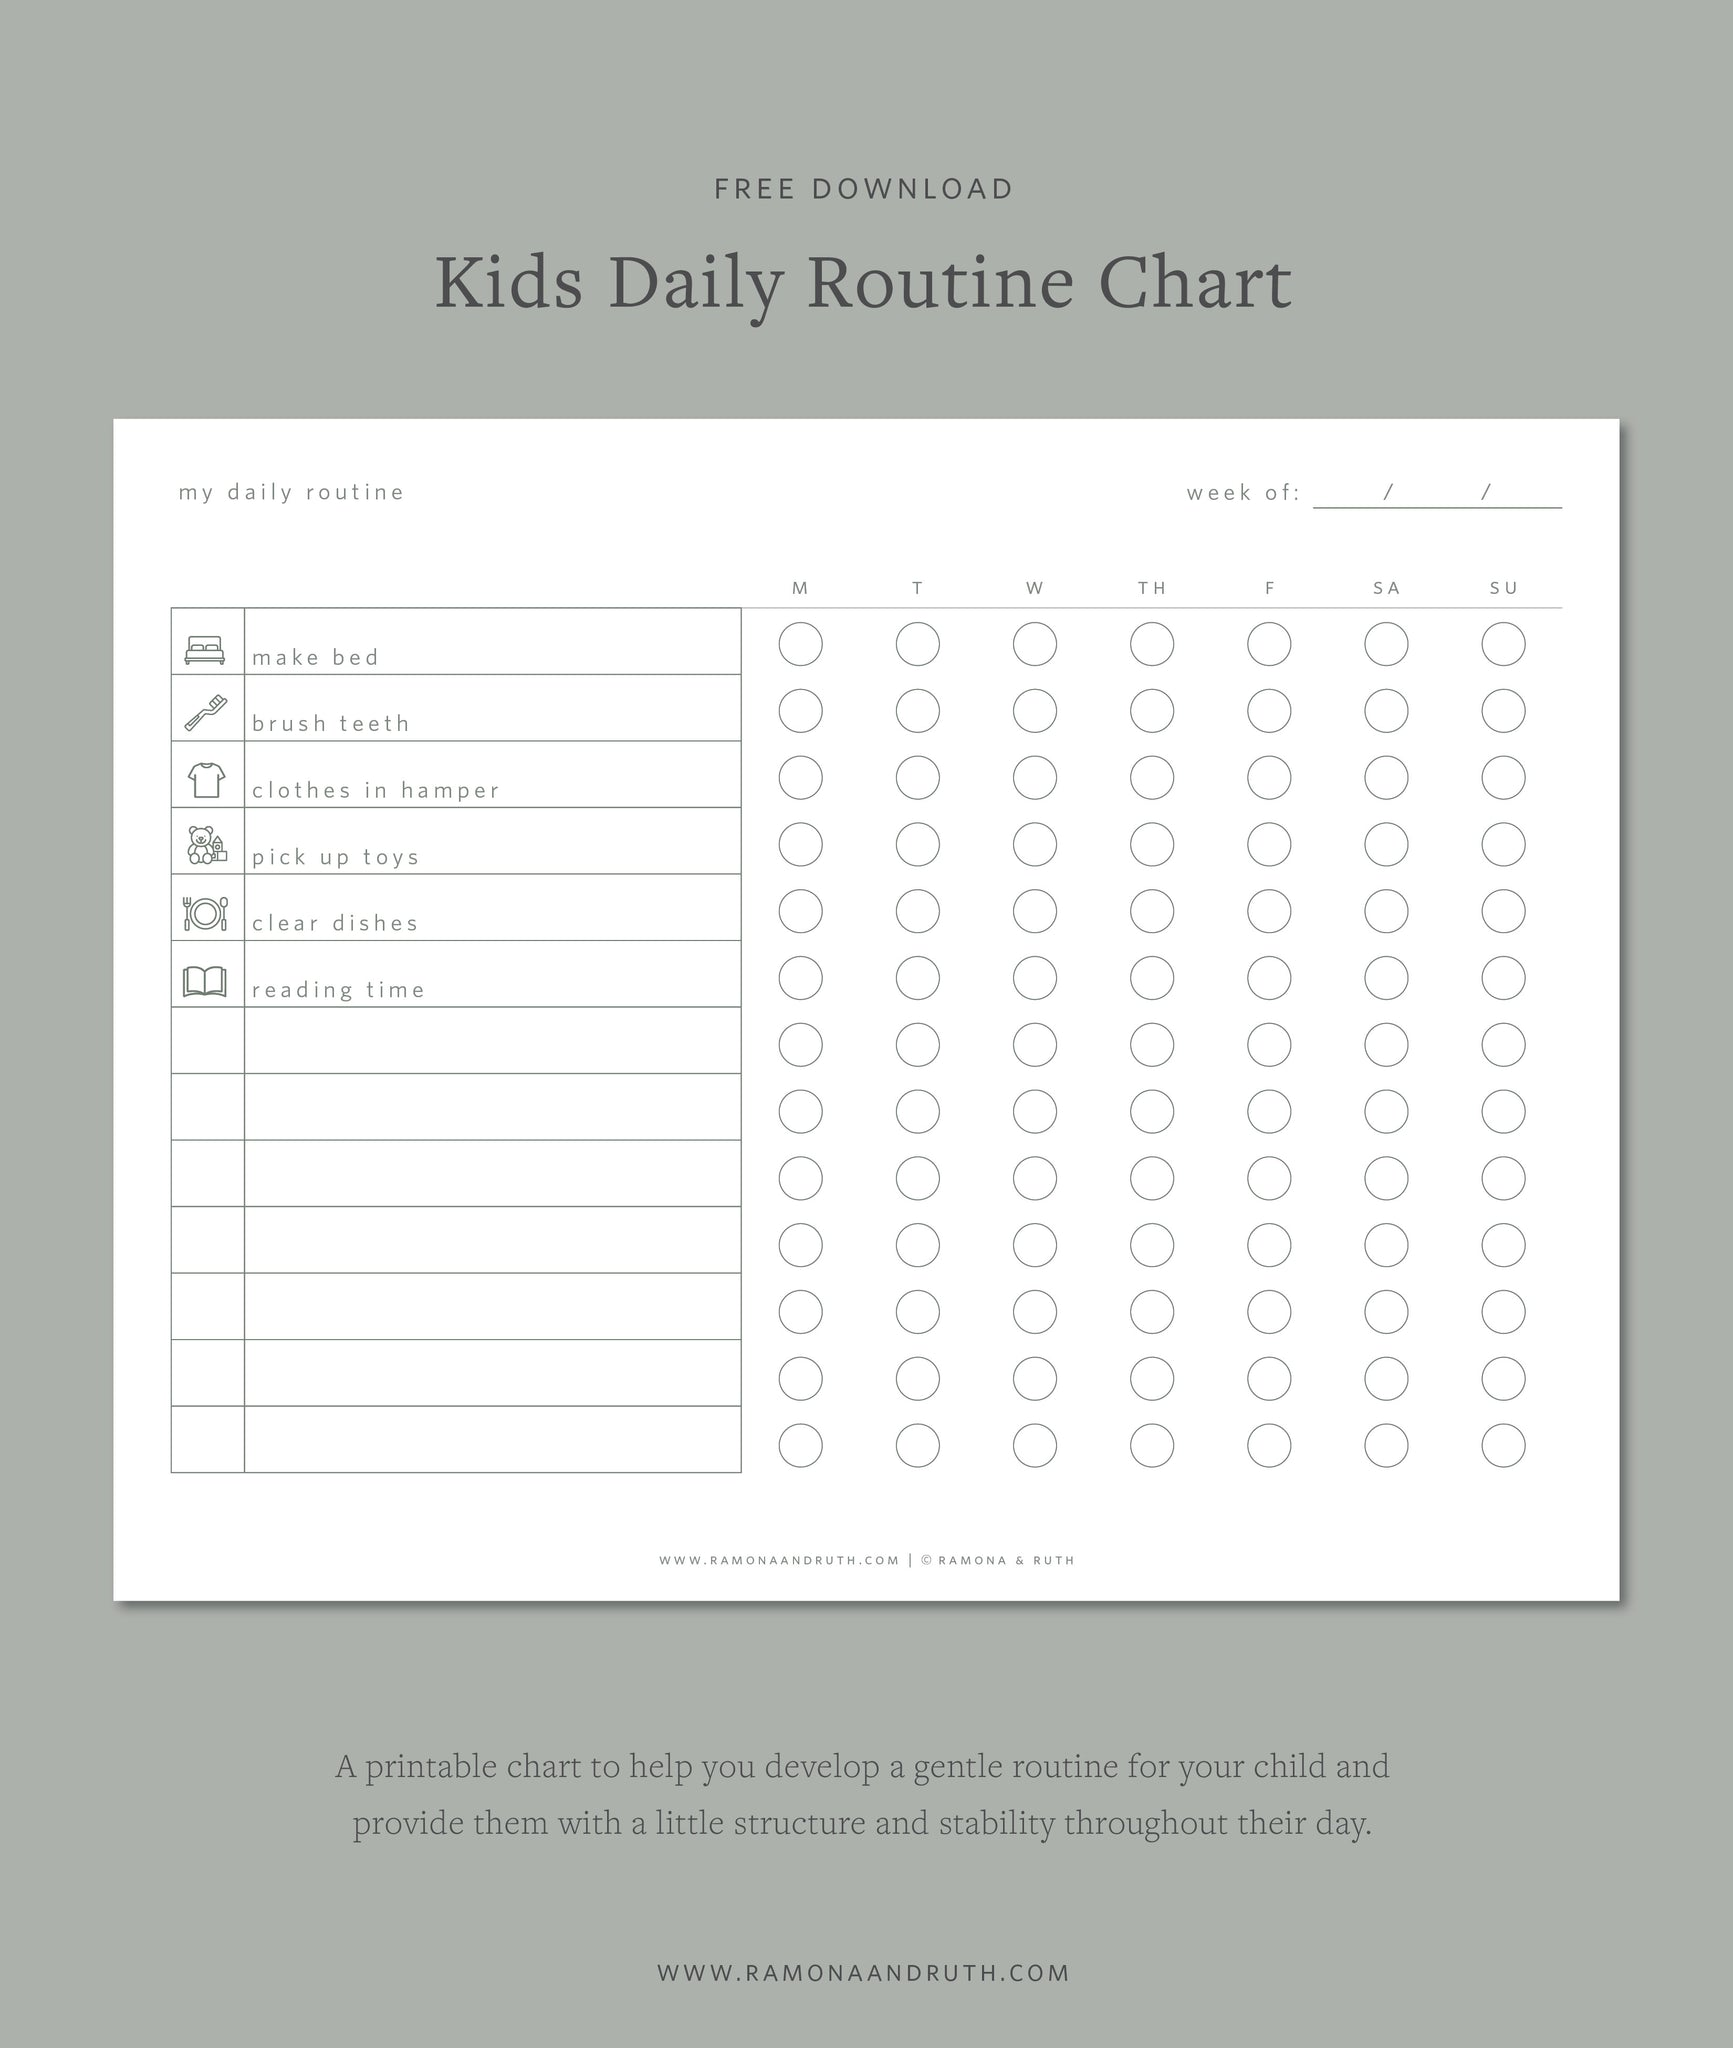 Kids Daily Routine Chart Free Printable by Ramona & Ruth